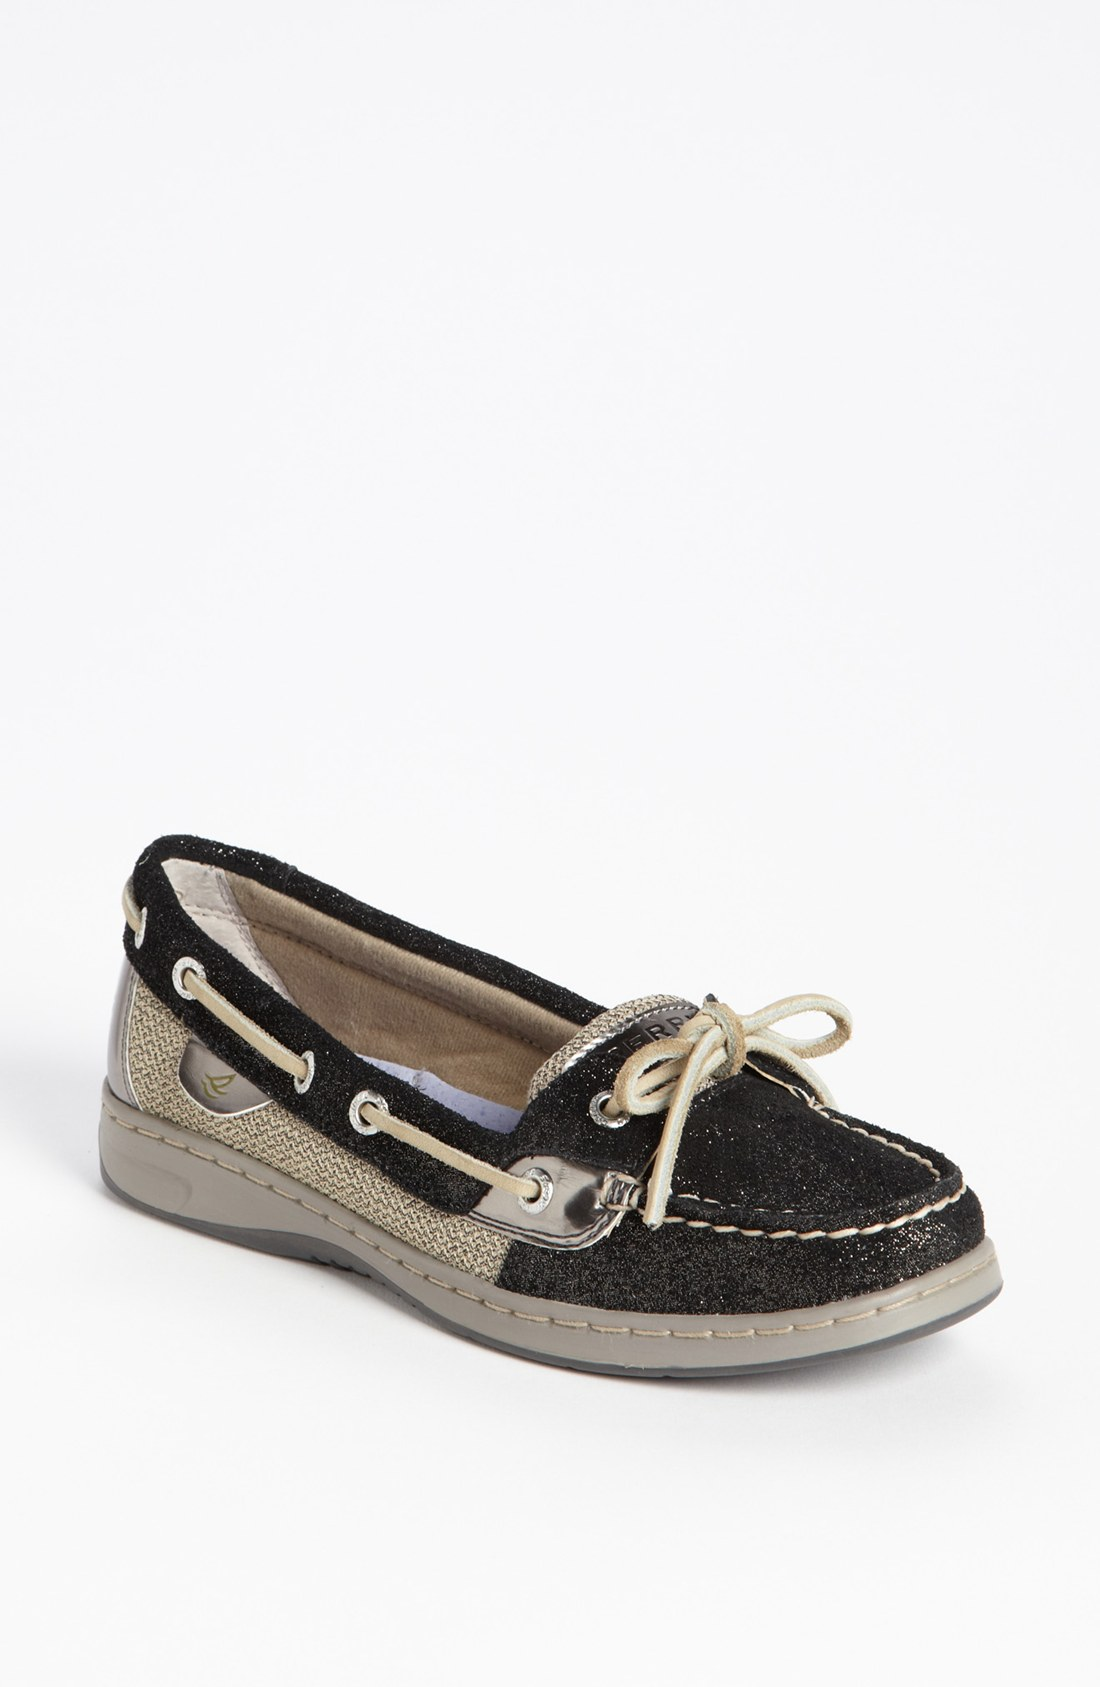 Galleries Related: Sperrys For